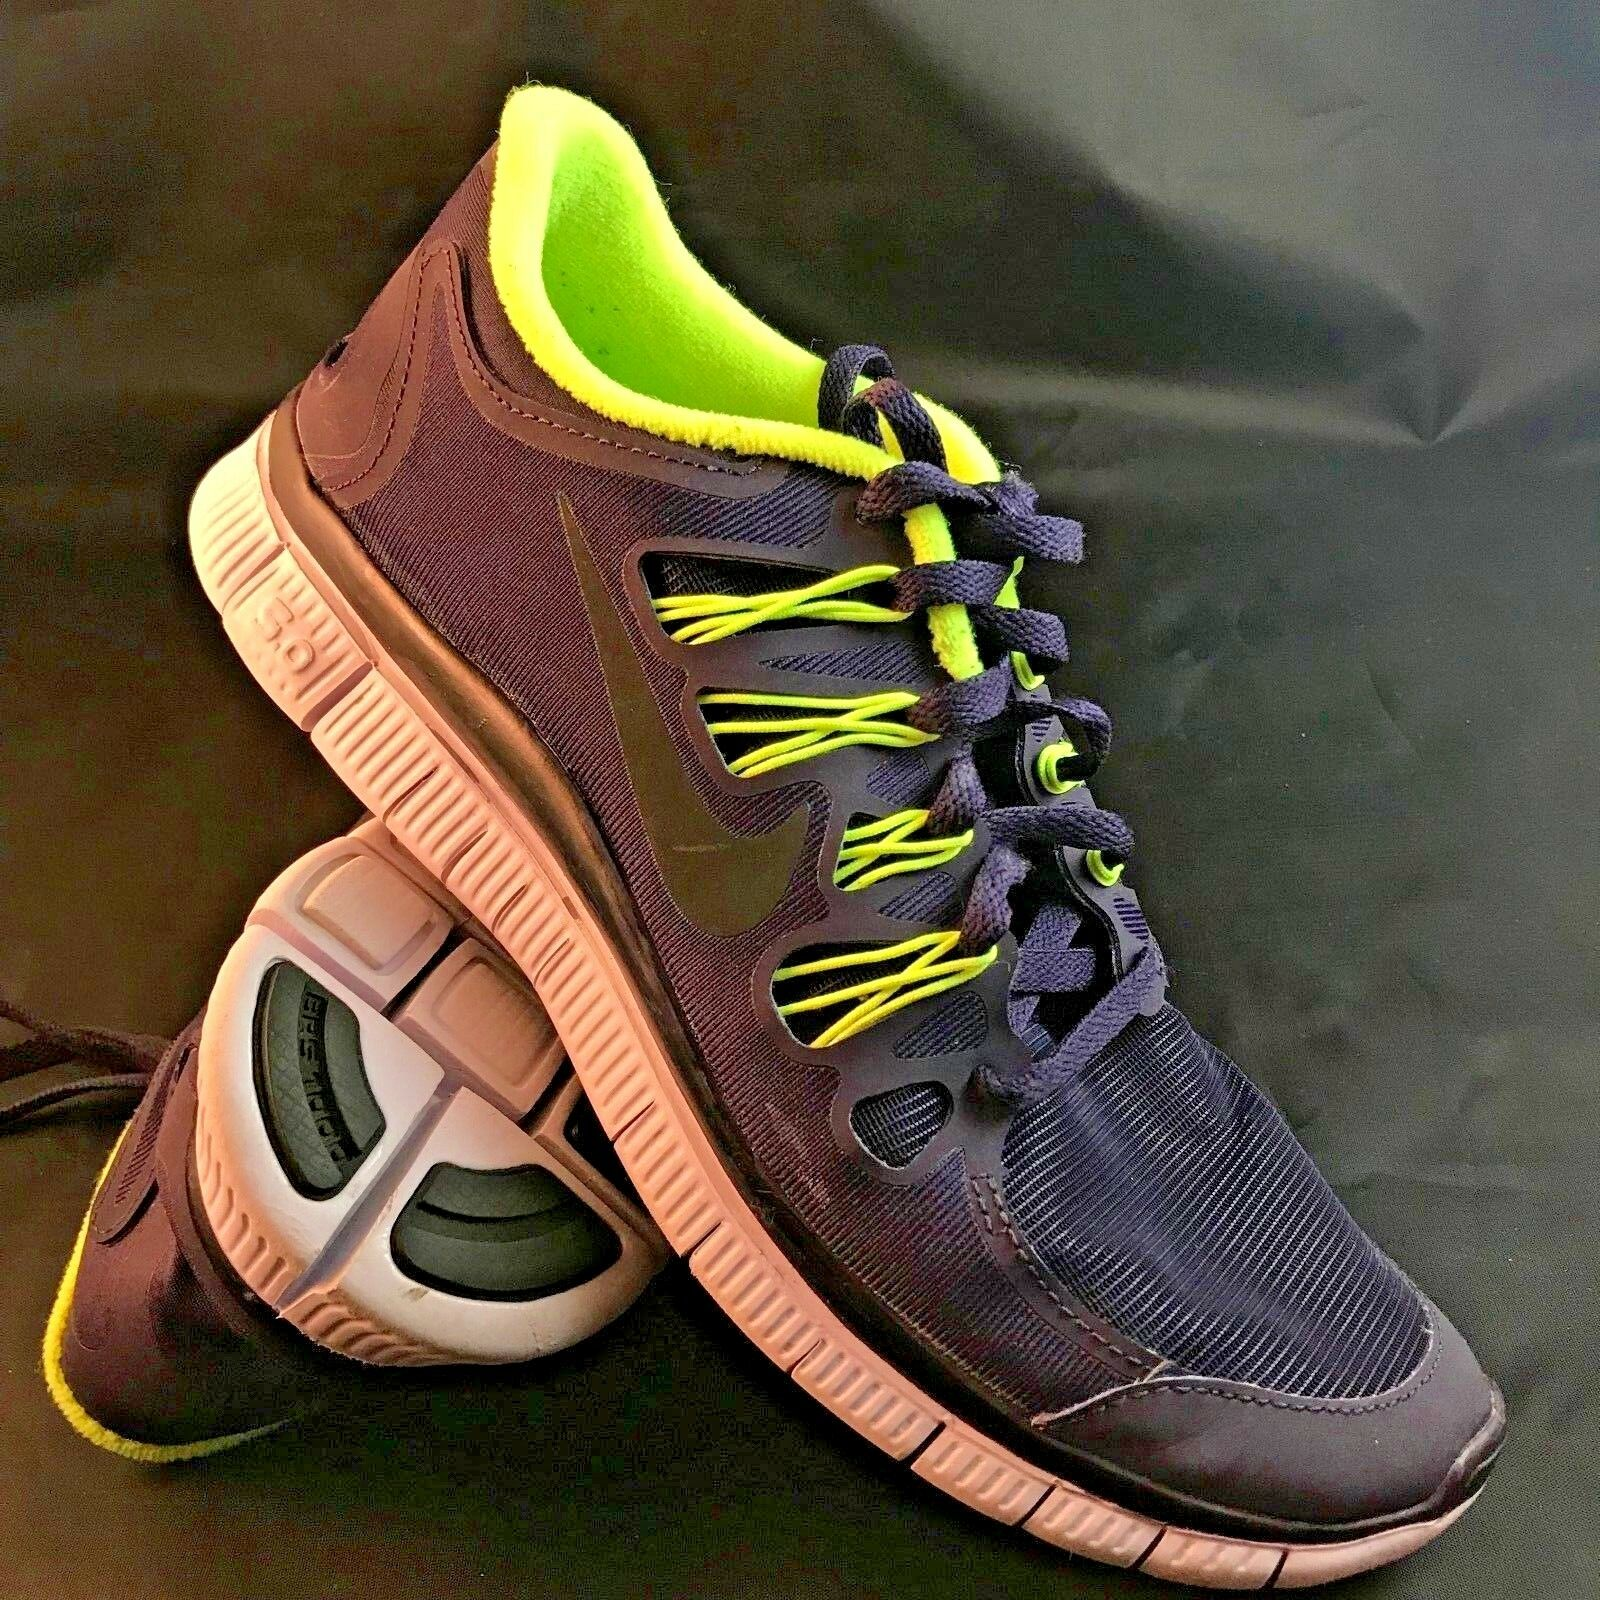 MINT NIKE FREE 5.0 SHIELD h20 repel RUNNING Chaussures Femme 9.5, 41 EUR  Violet  Lime